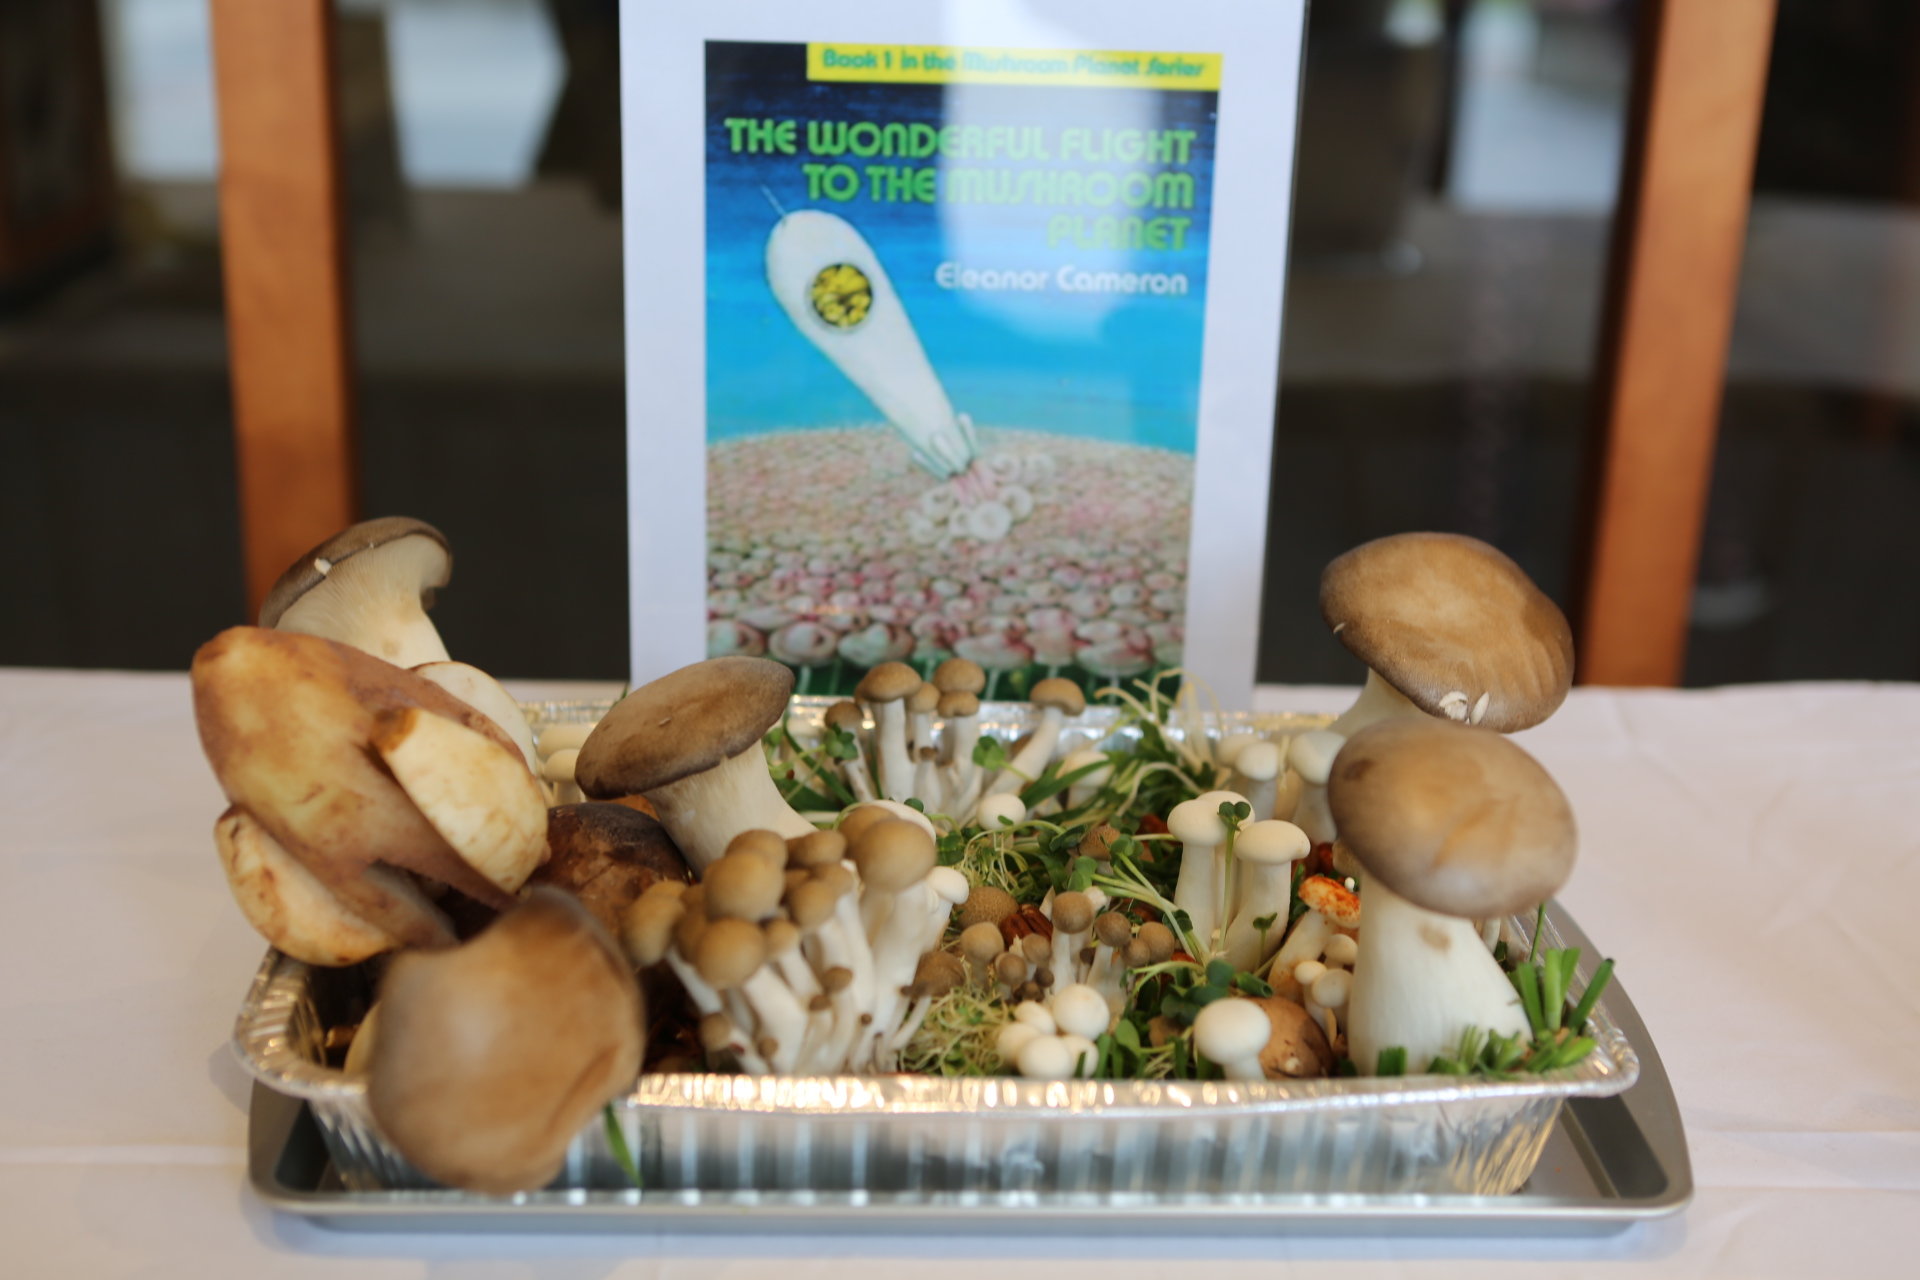 Healthiest: The Wonderful Flight of the Mushroom Planet by Circulation Department (staff member Sandy Avalos)